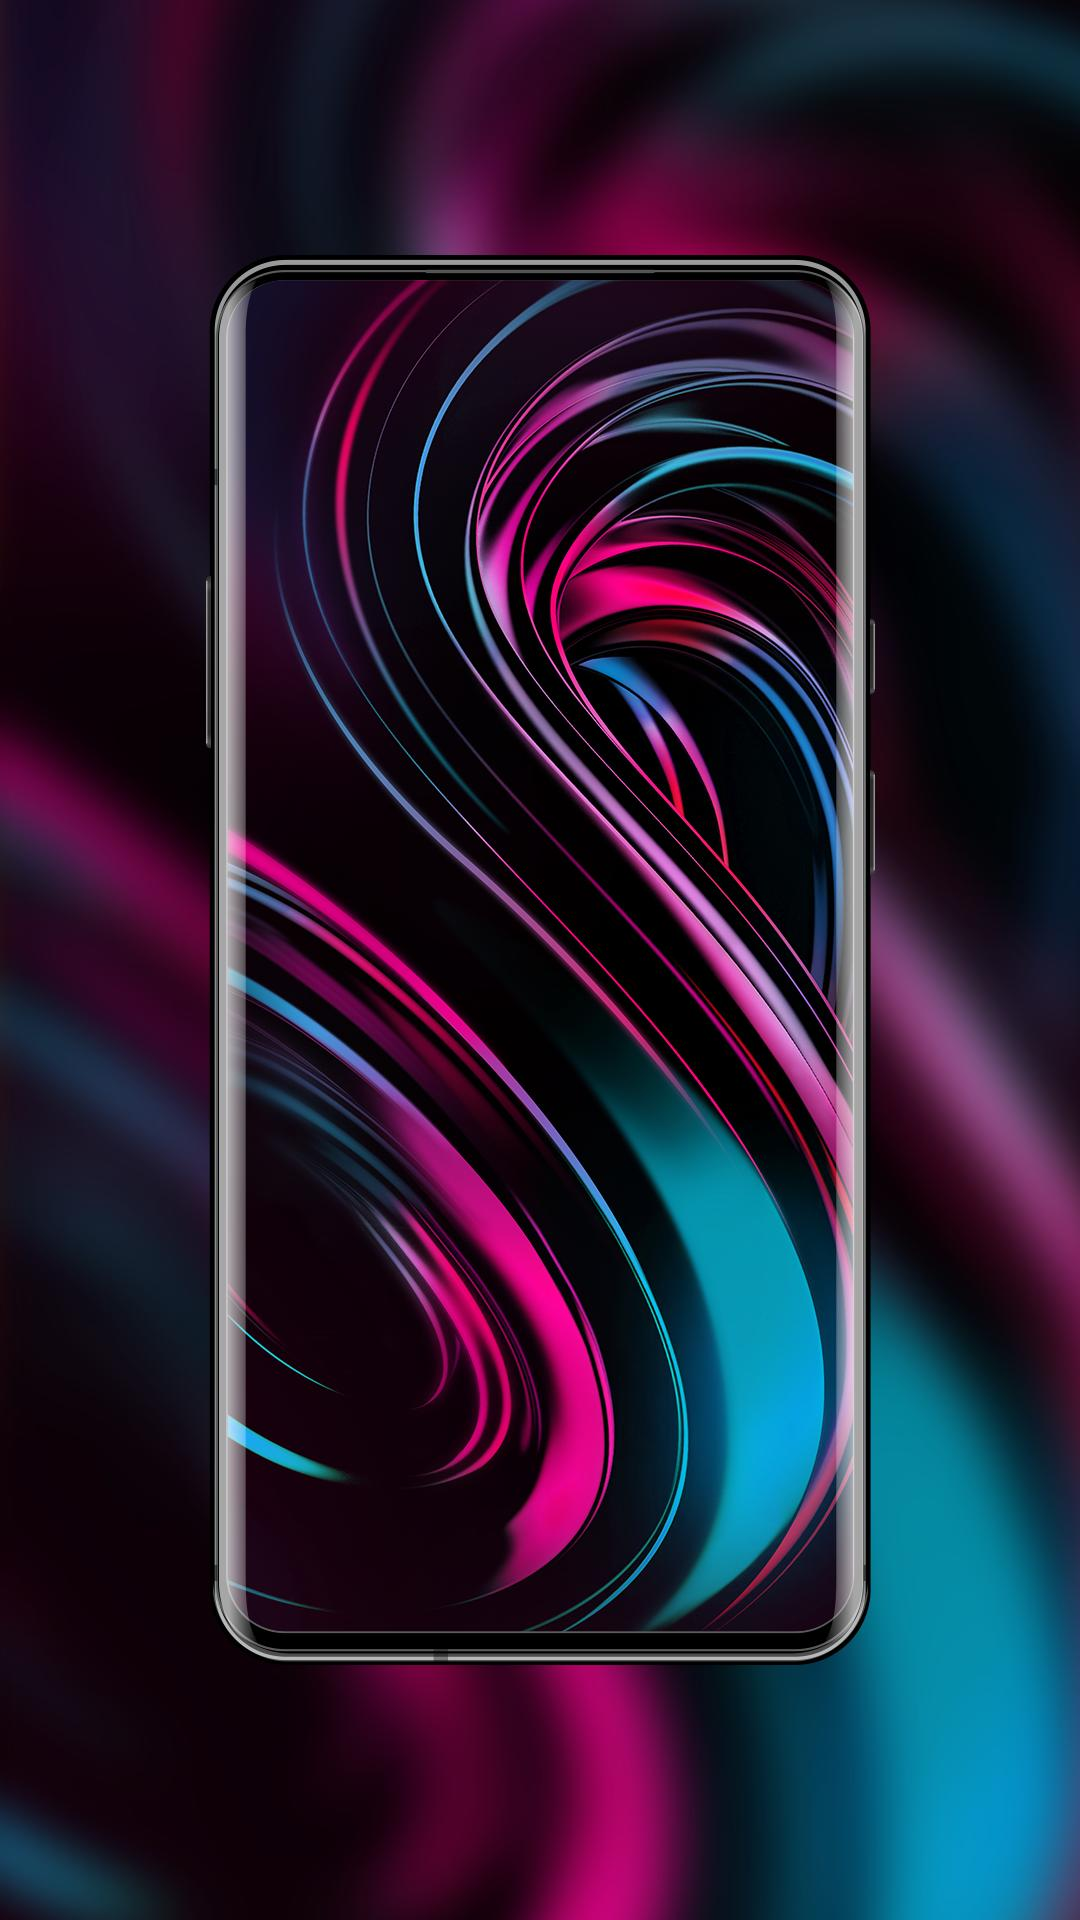 Wallpaper For Android Phone Hd Posted By Ethan Mercado